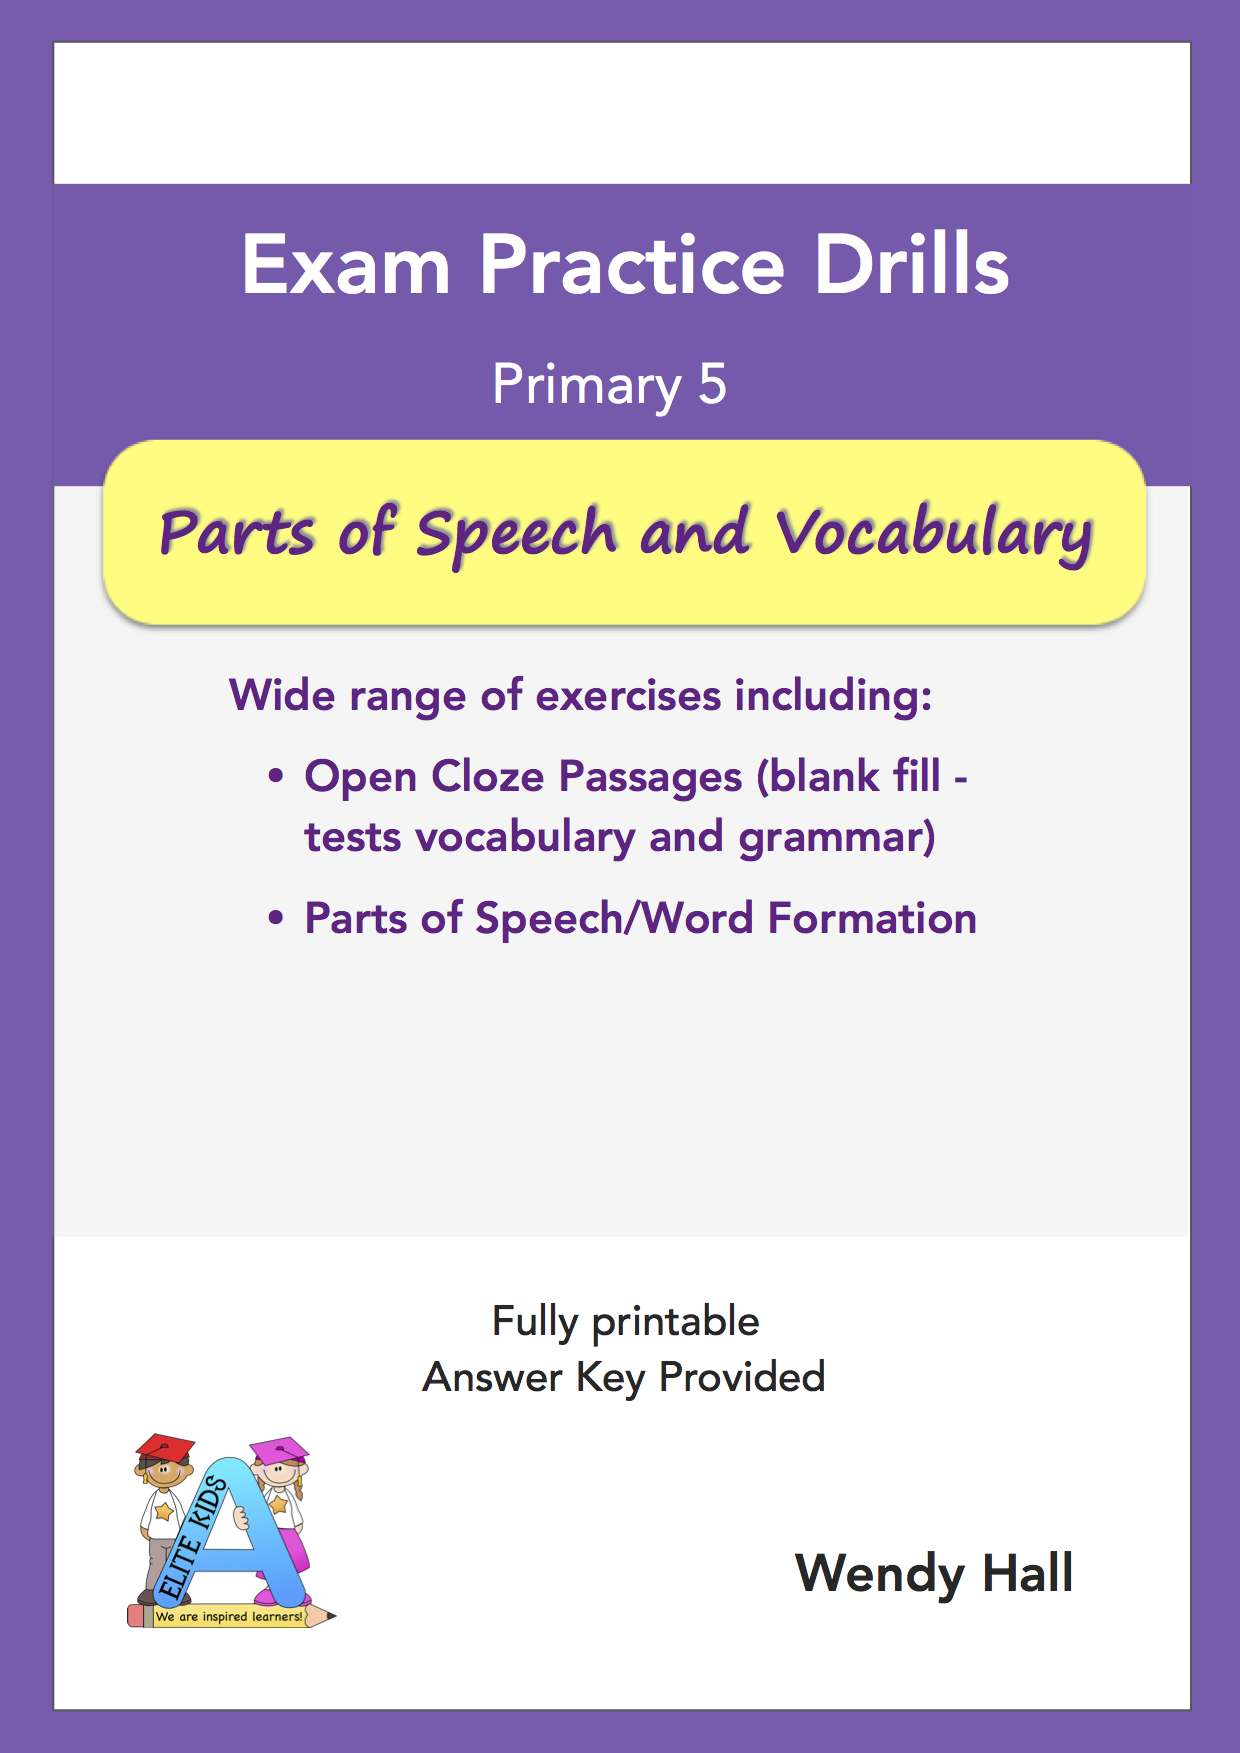 Elite Kids | Exam Practice Drills - Parts of speech and vocabulary - Primary 5